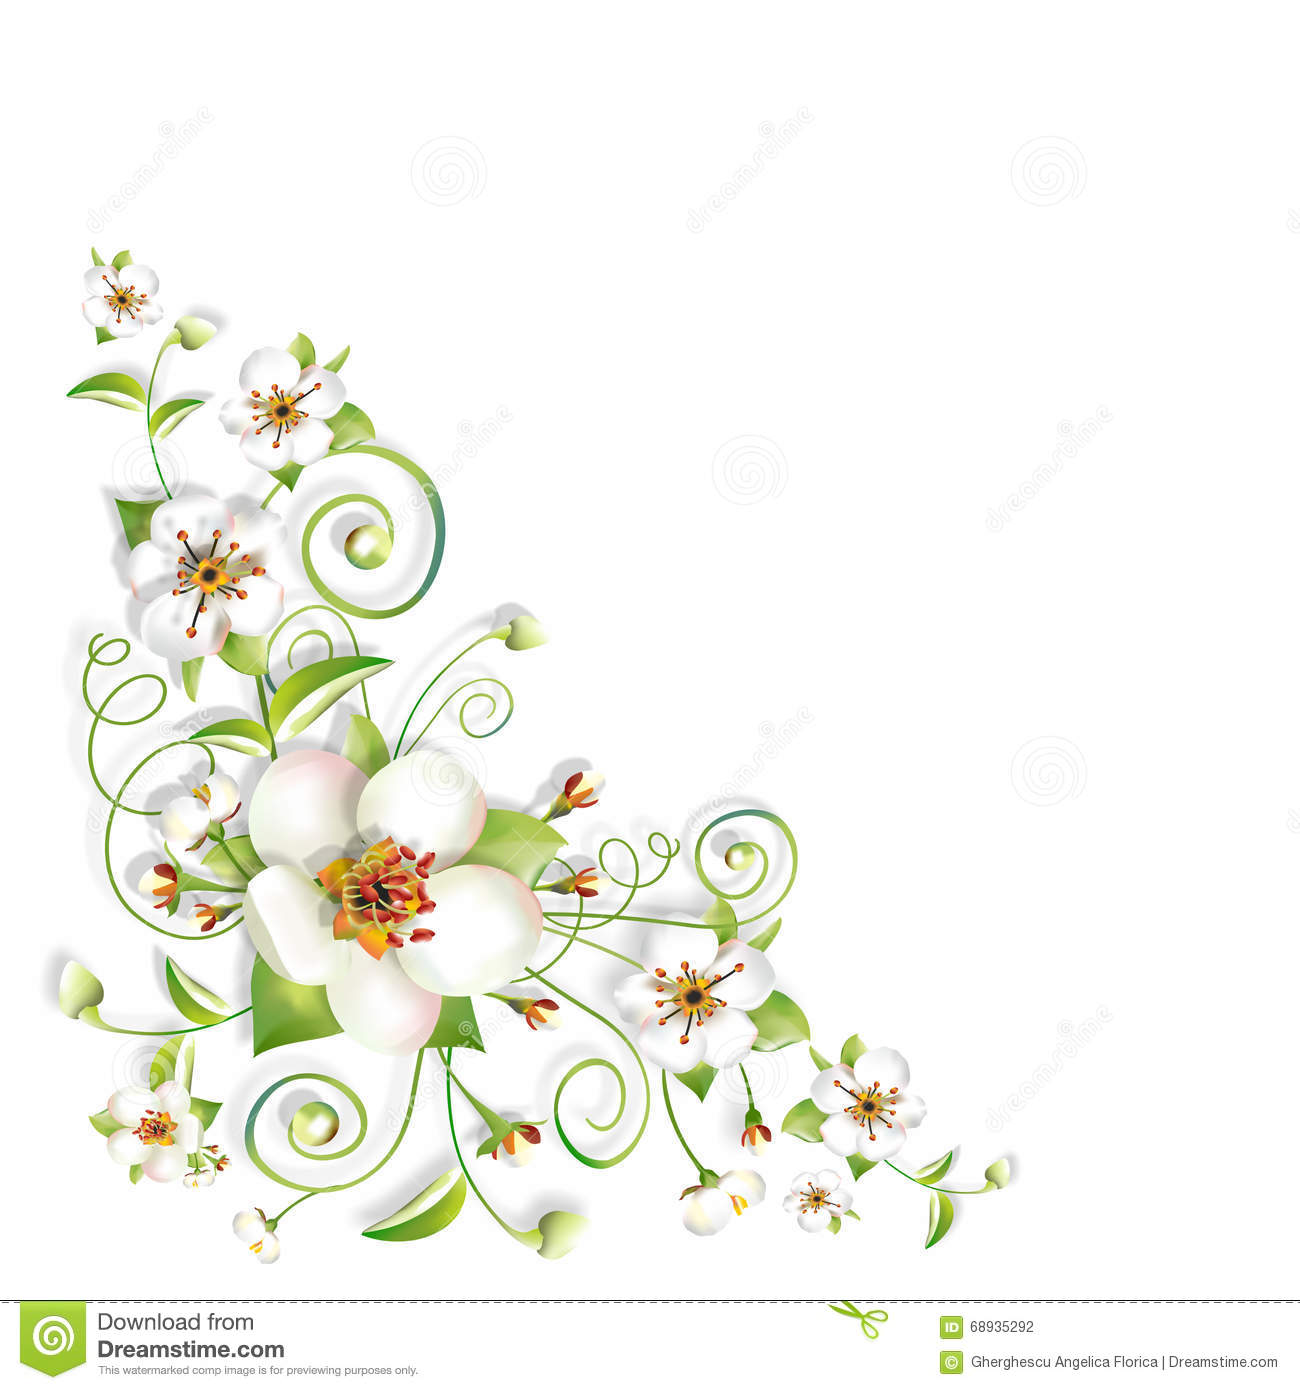 Sprig Flowers Background Corner Stock Photo - Illustration of black ... for Vector Flower Background Png  575cpg